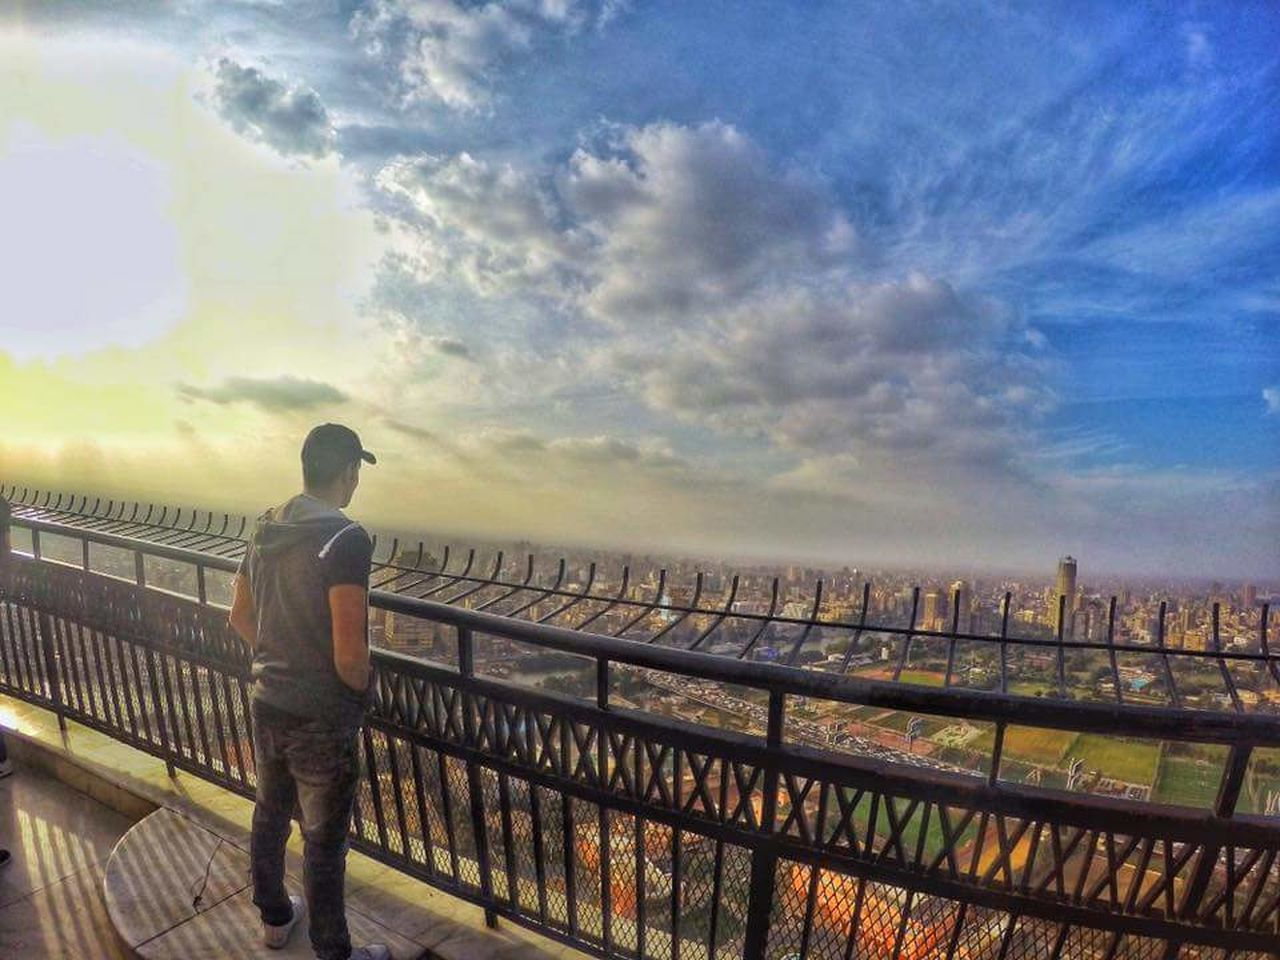 railing, sky, cloud - sky, one person, real people, full length, men, outdoors, rear view, leisure activity, standing, bridge - man made structure, lifestyles, nature, sunset, day, one man only, architecture, cityscape, adult, beauty in nature, city, only men, young adult, adults only, people